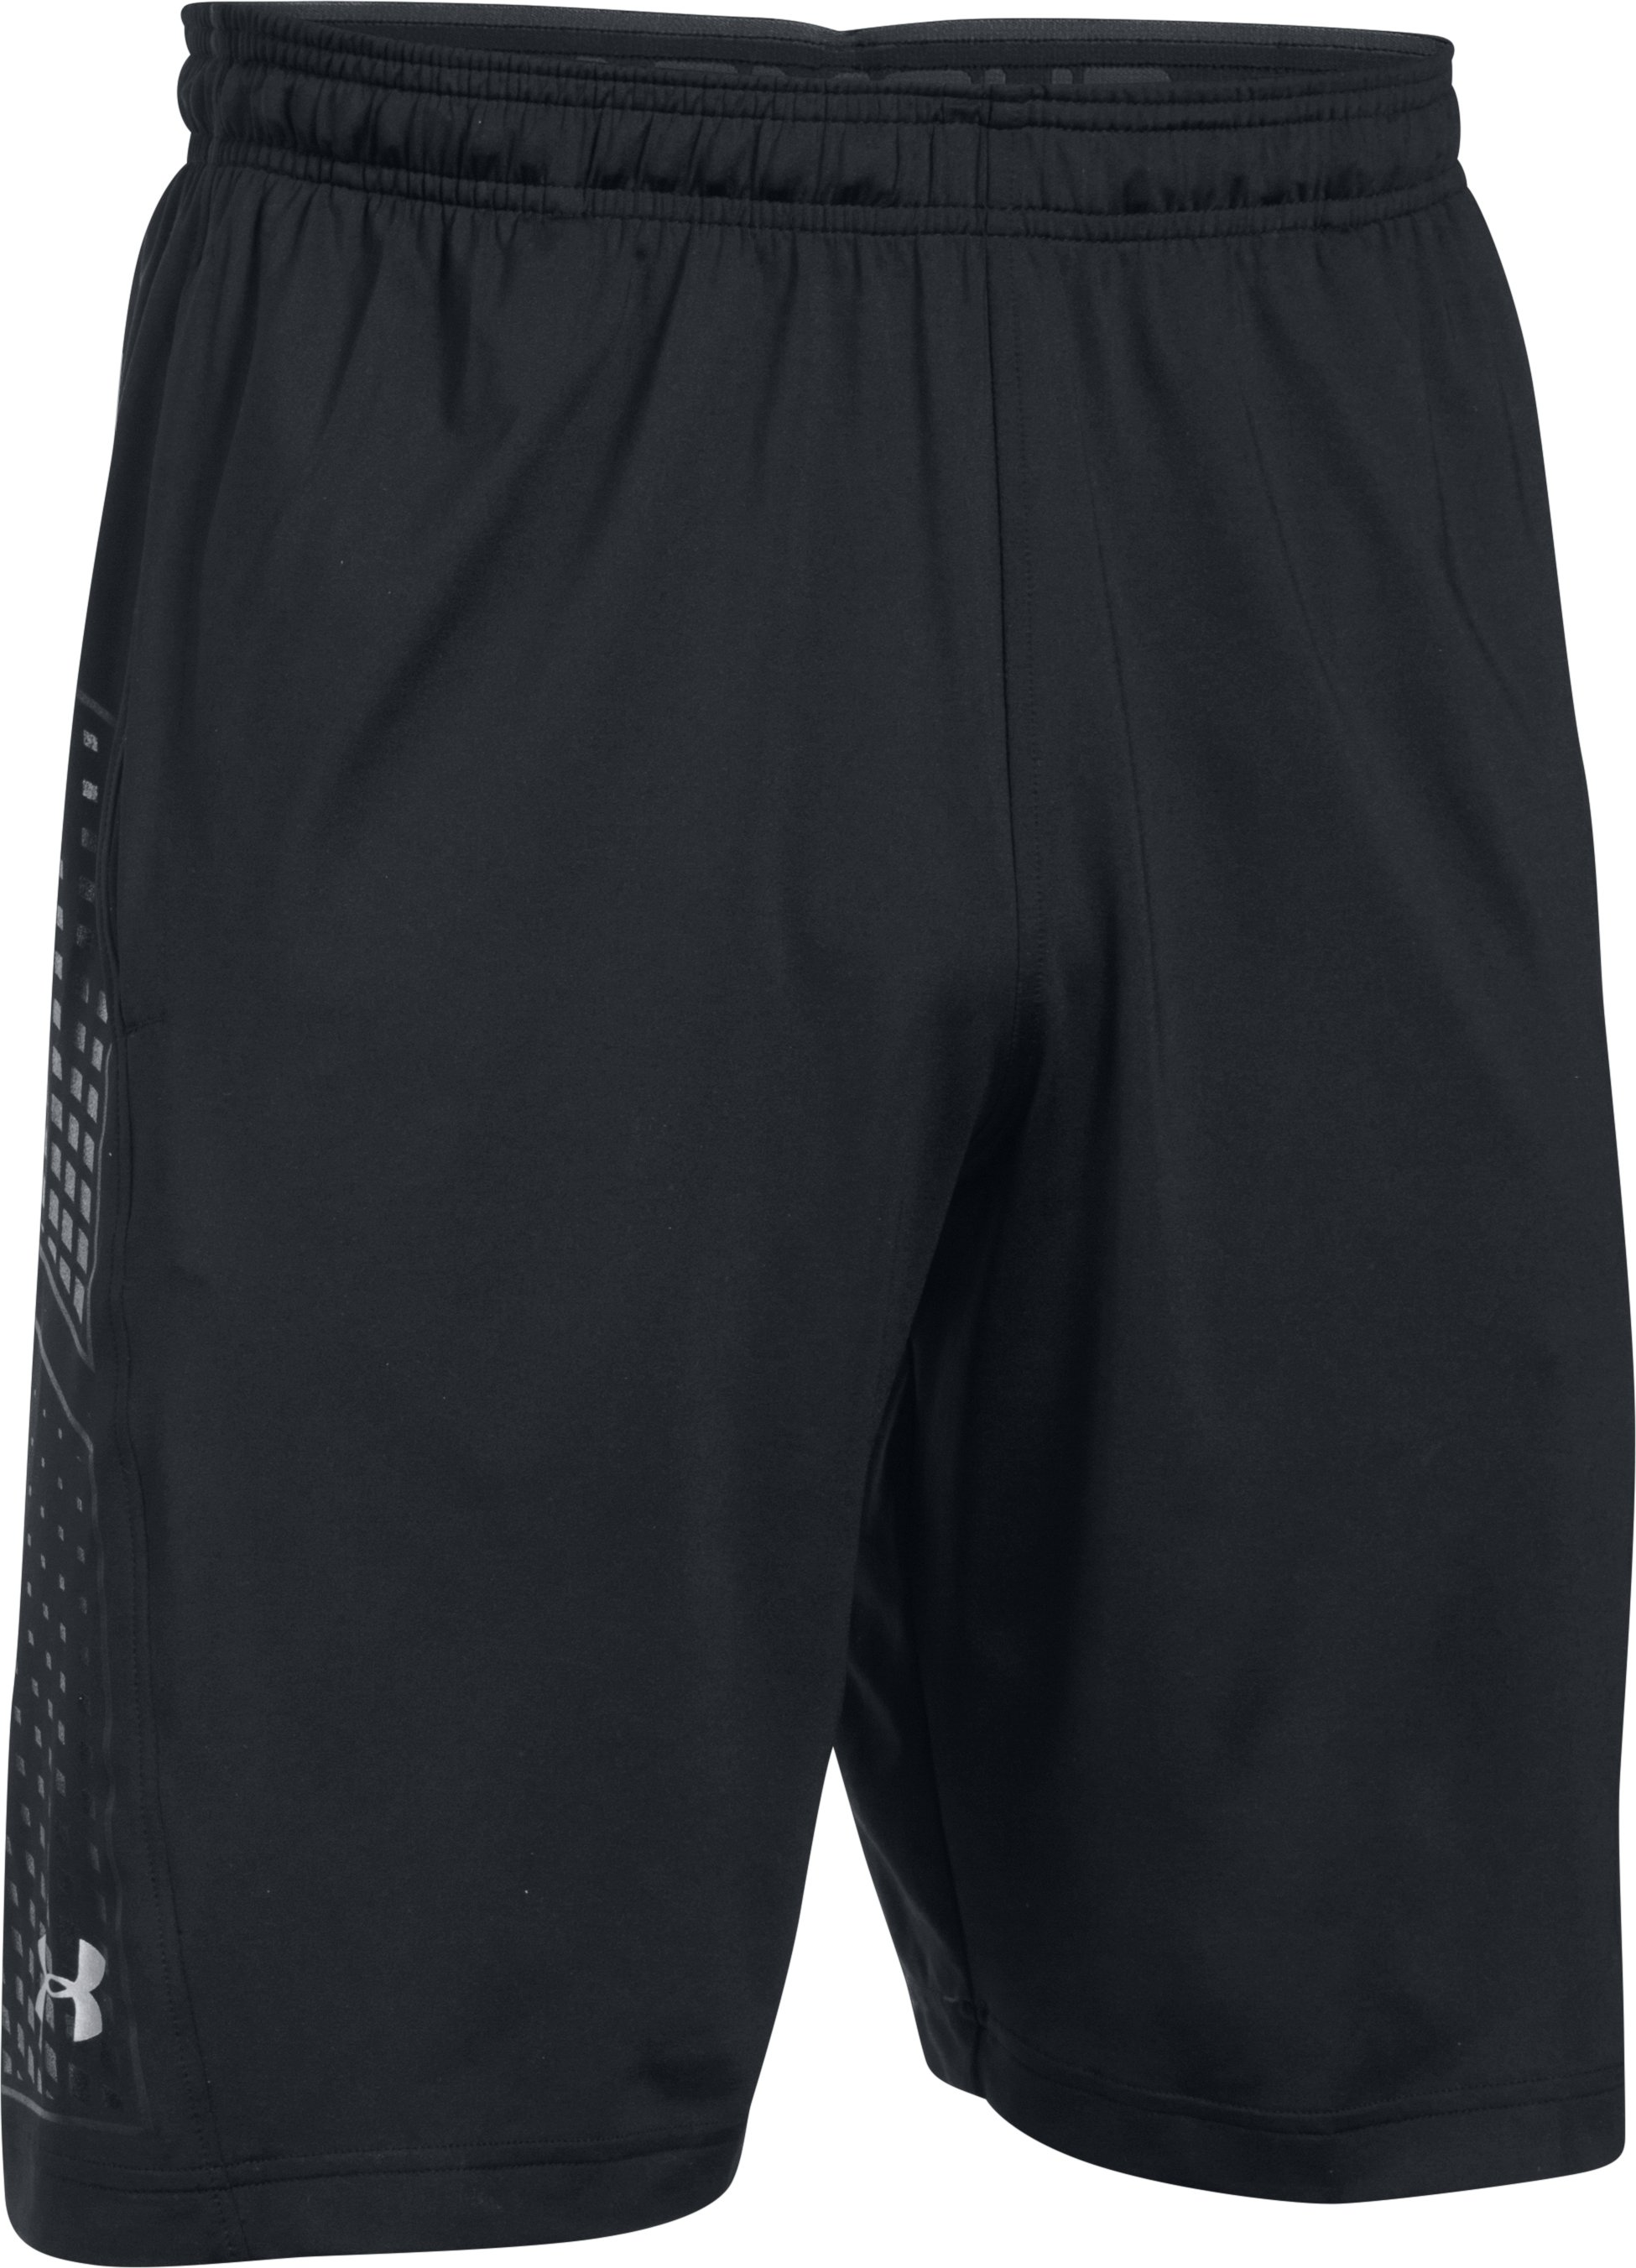 Men's UA Football Training Shorts, Black ,